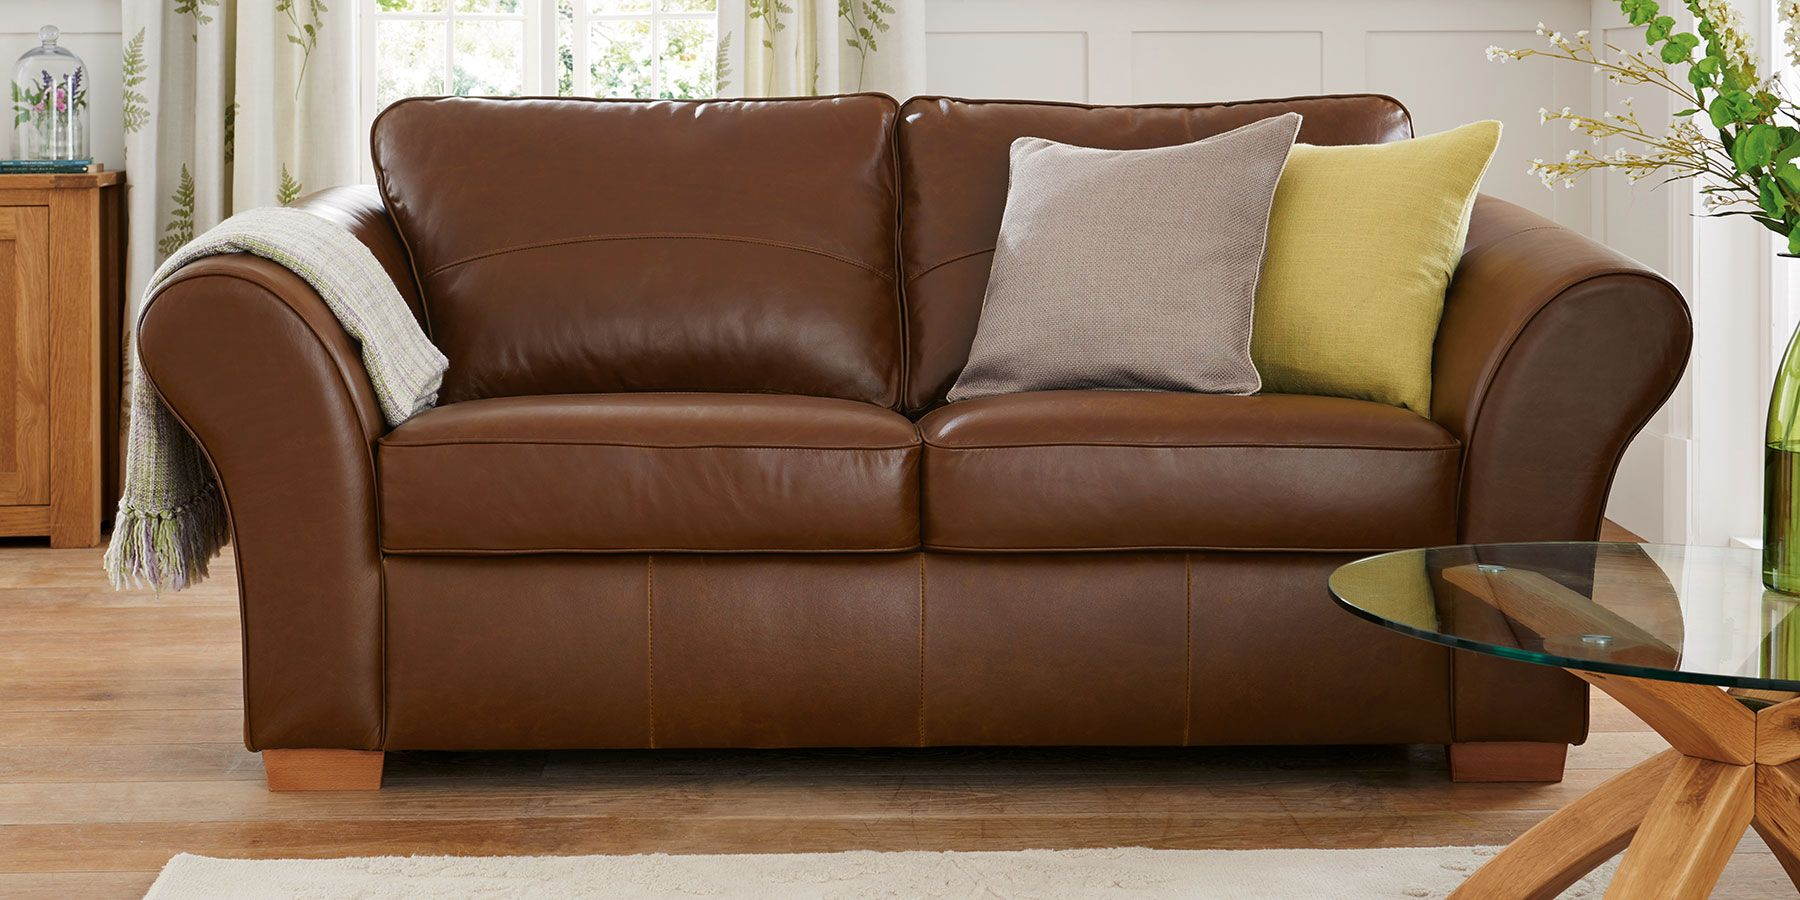 Stamford Leather Large Sofa 3 Seats Bolivia Dark Tan Next